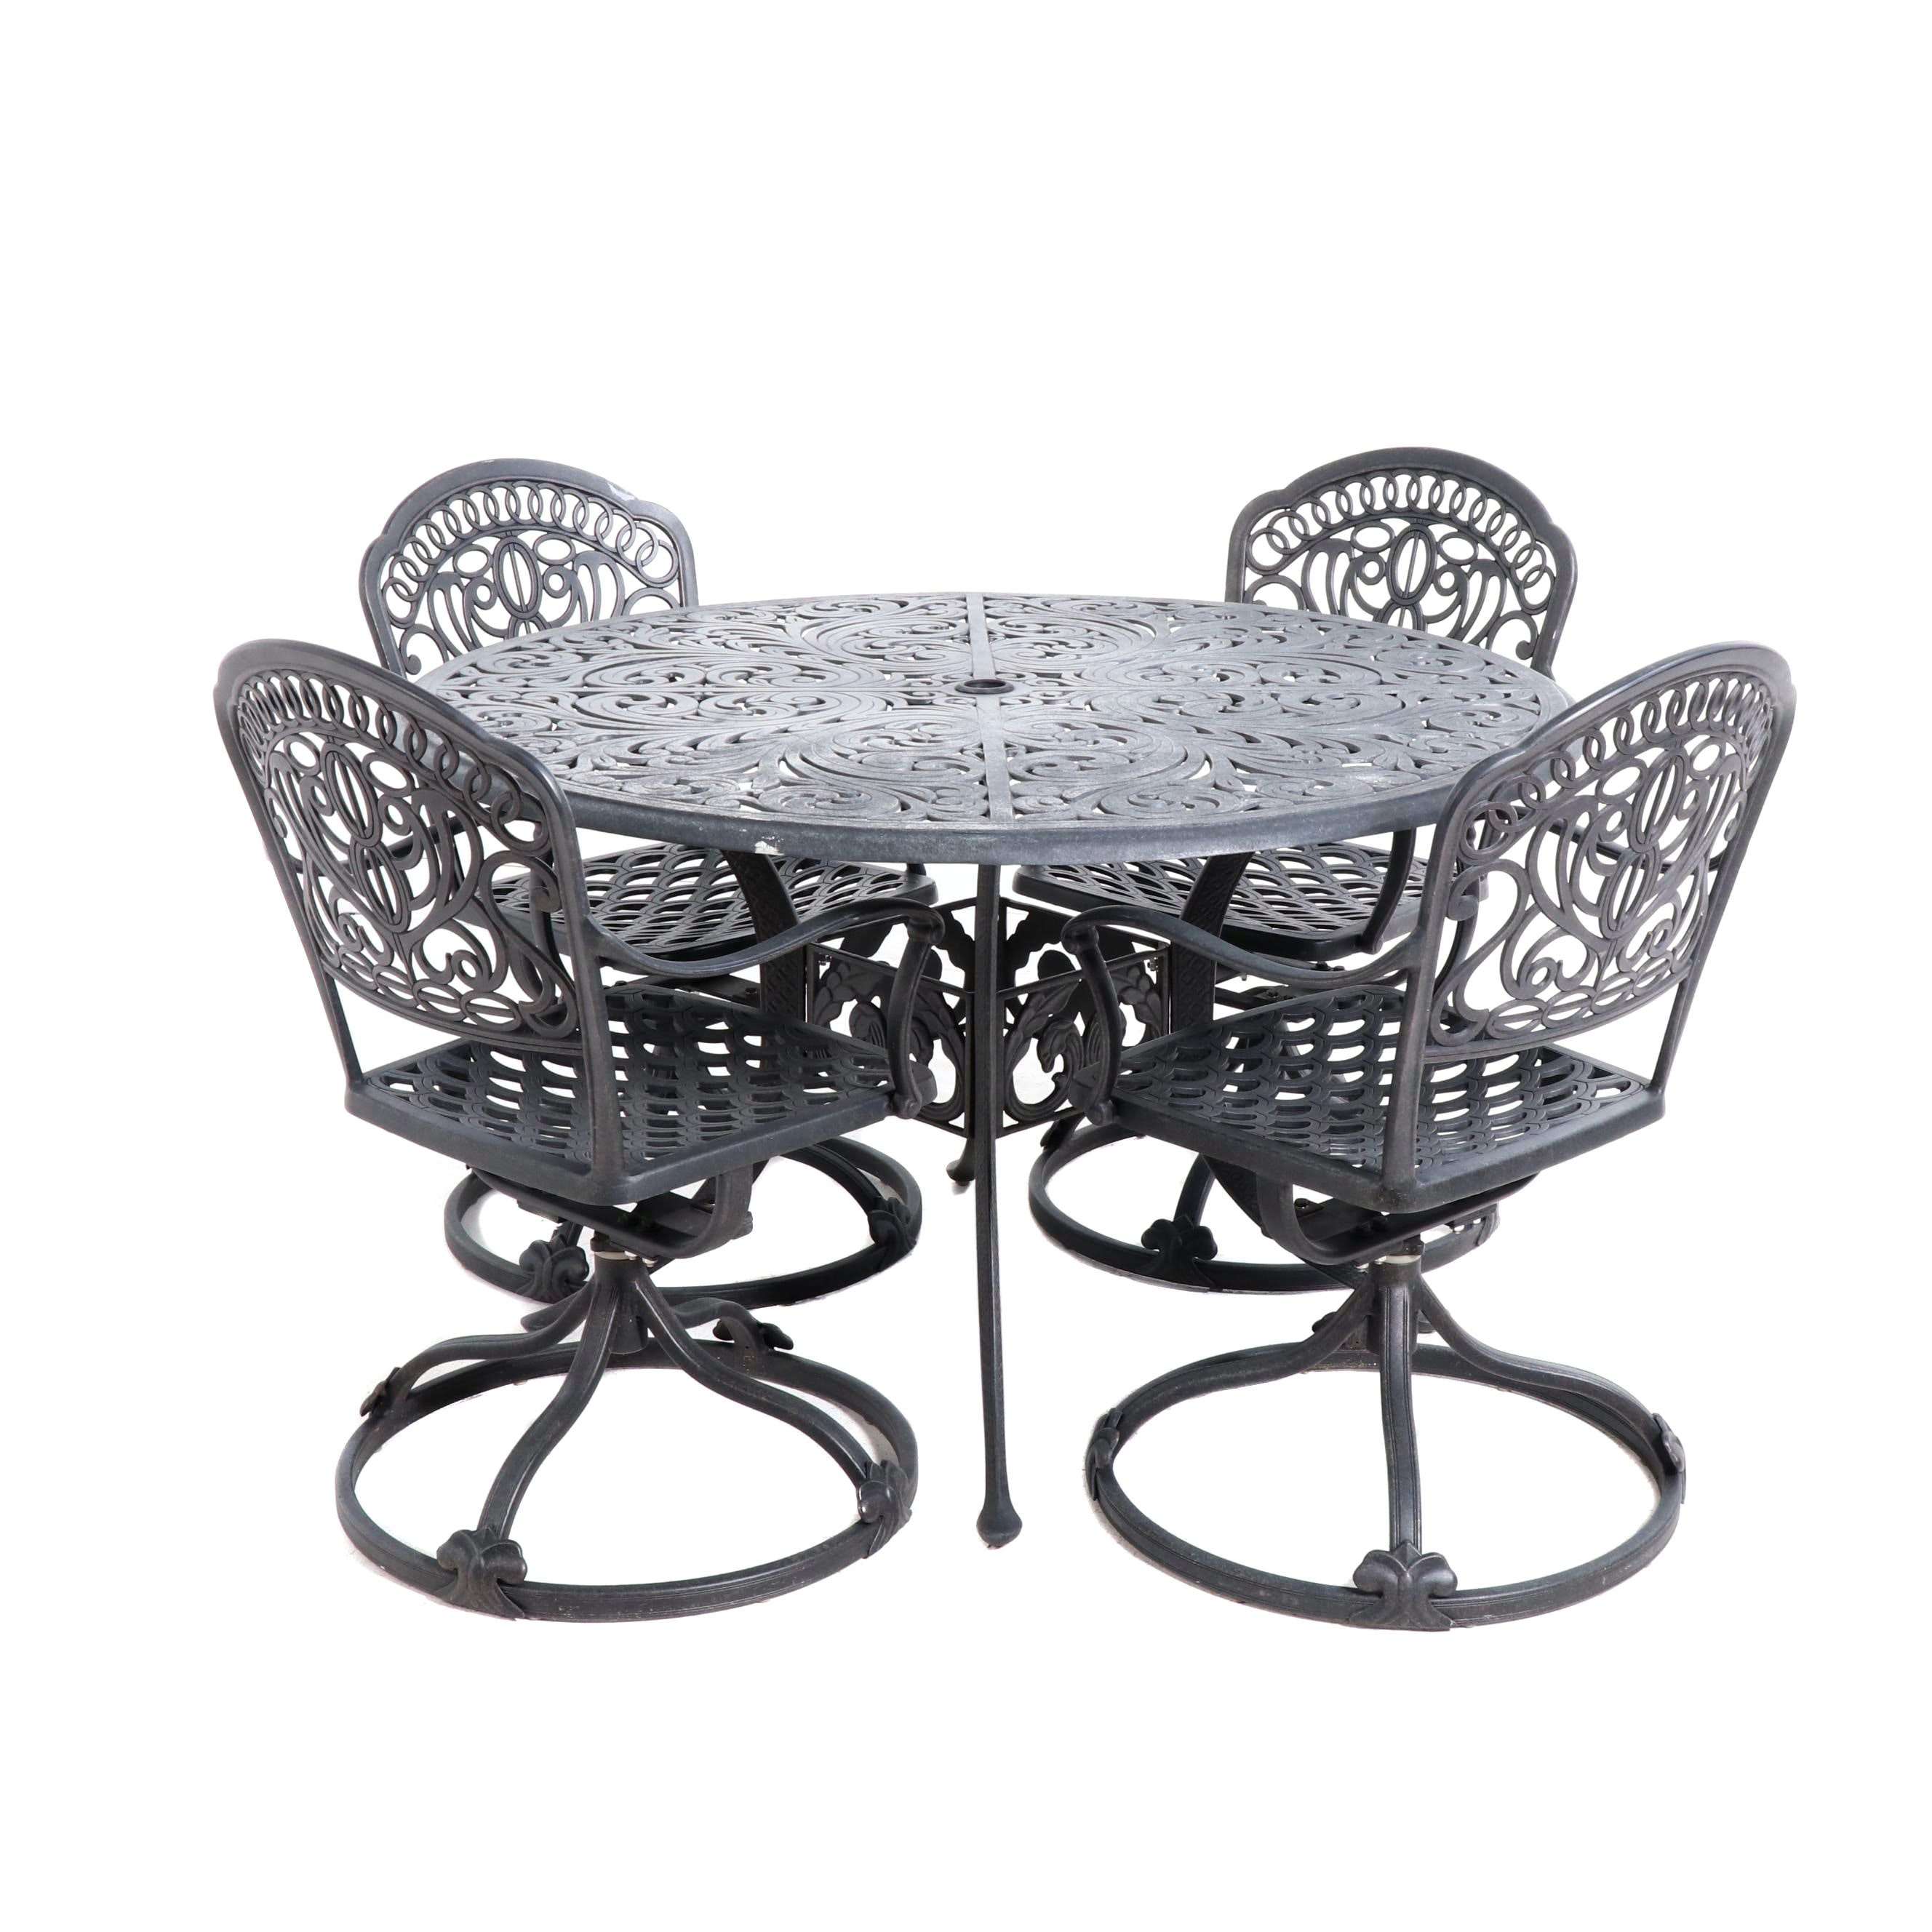 Faux Cast Iron Metal Patio Table and Four Chairs